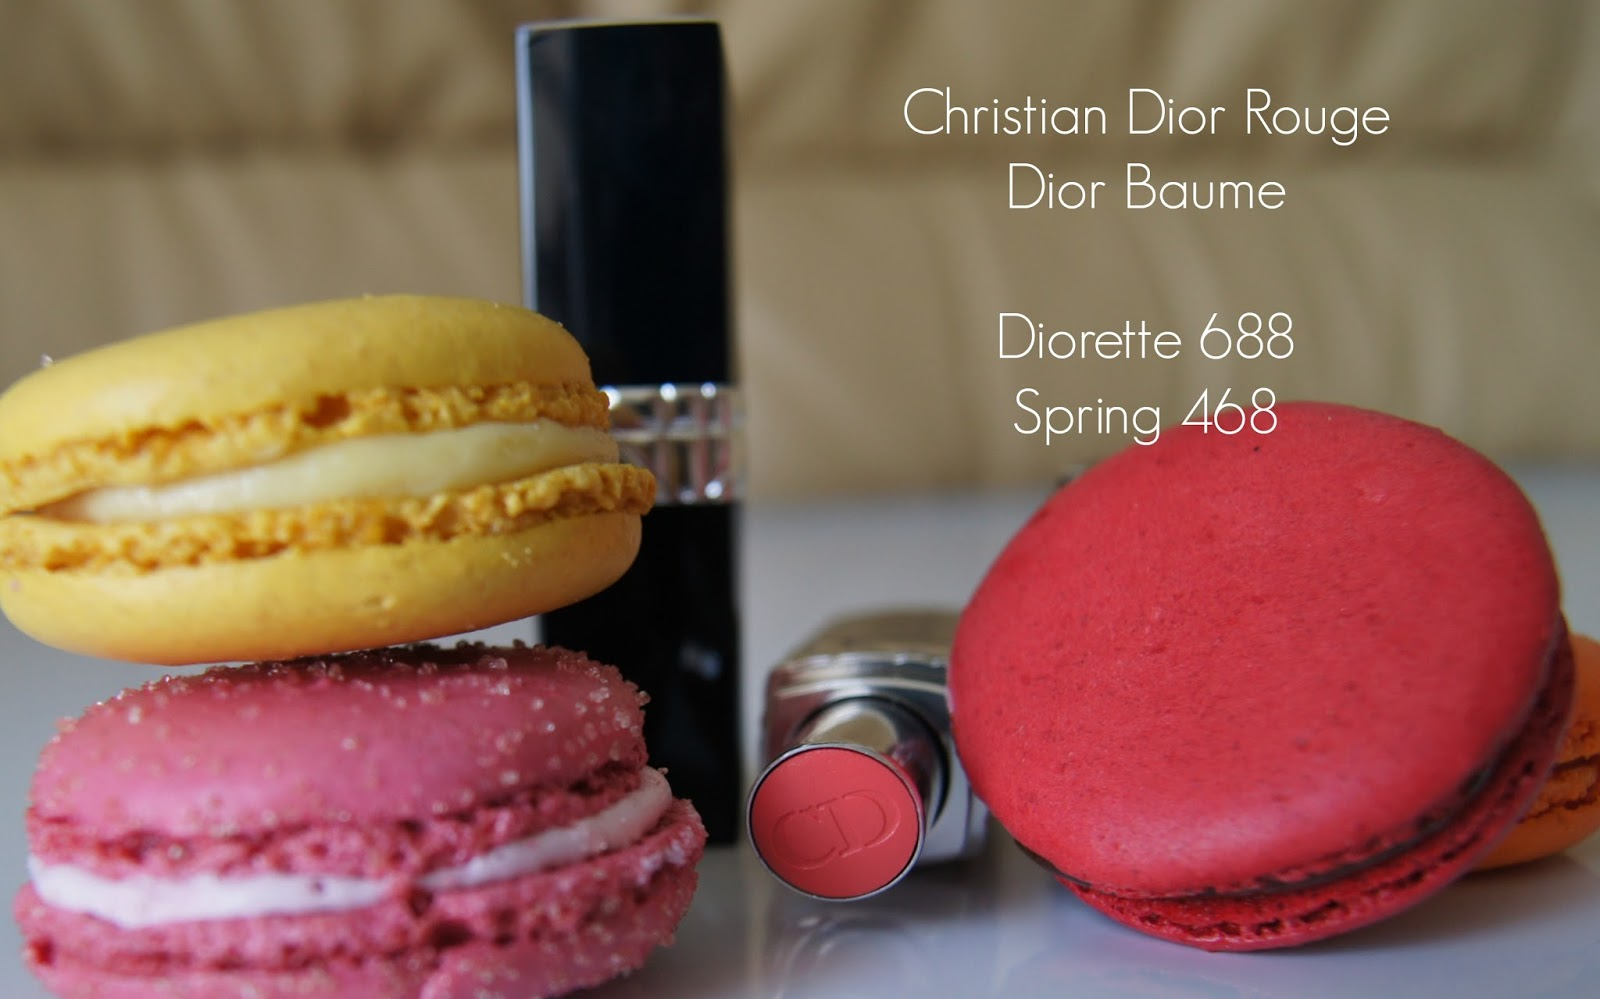 Christian Dior Rouge Dior Baume review